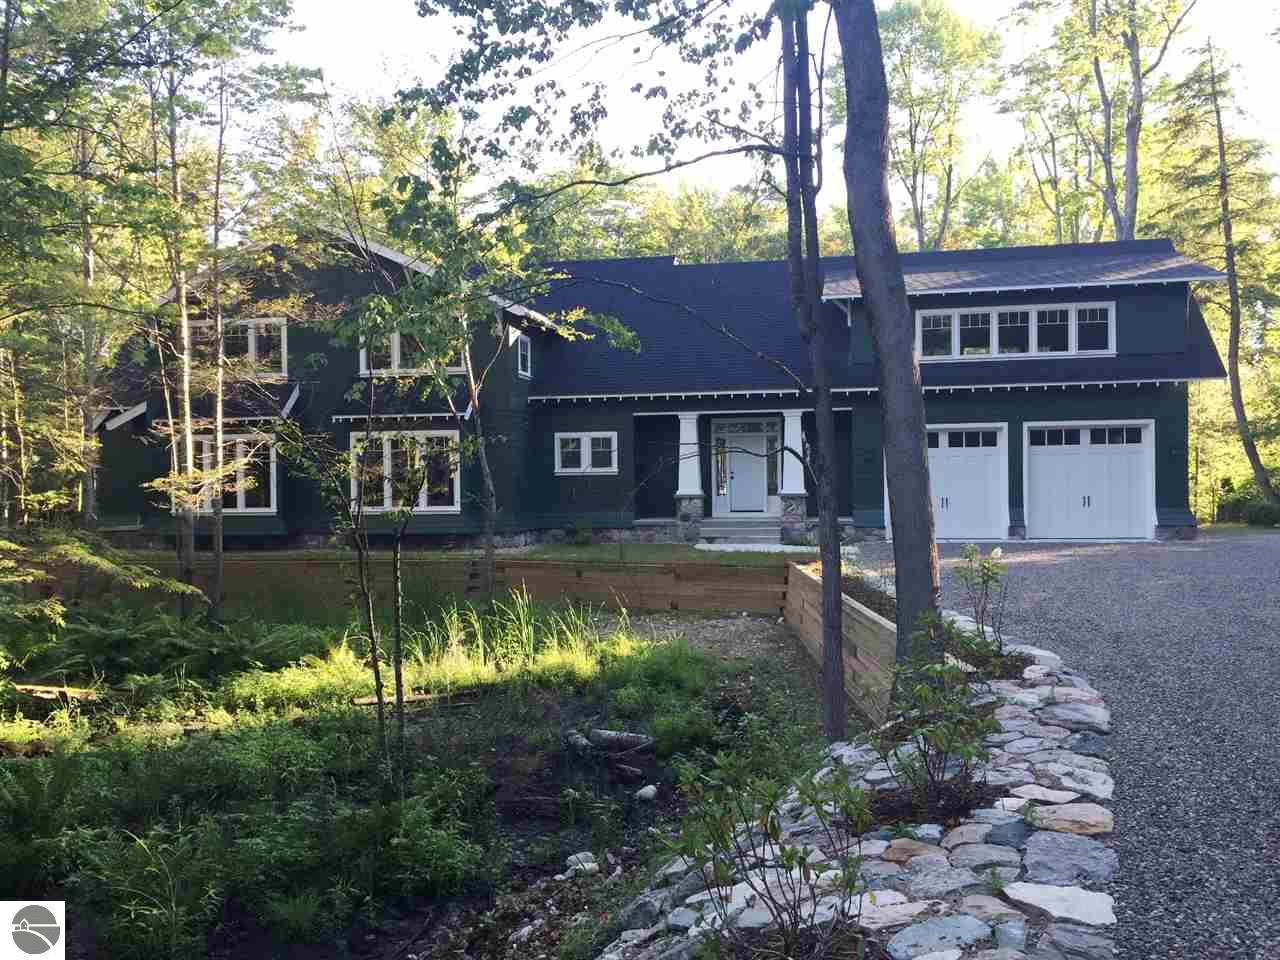 4 Bedroom Waterfront Homes For Sale On Long Lake In Northern Michigan